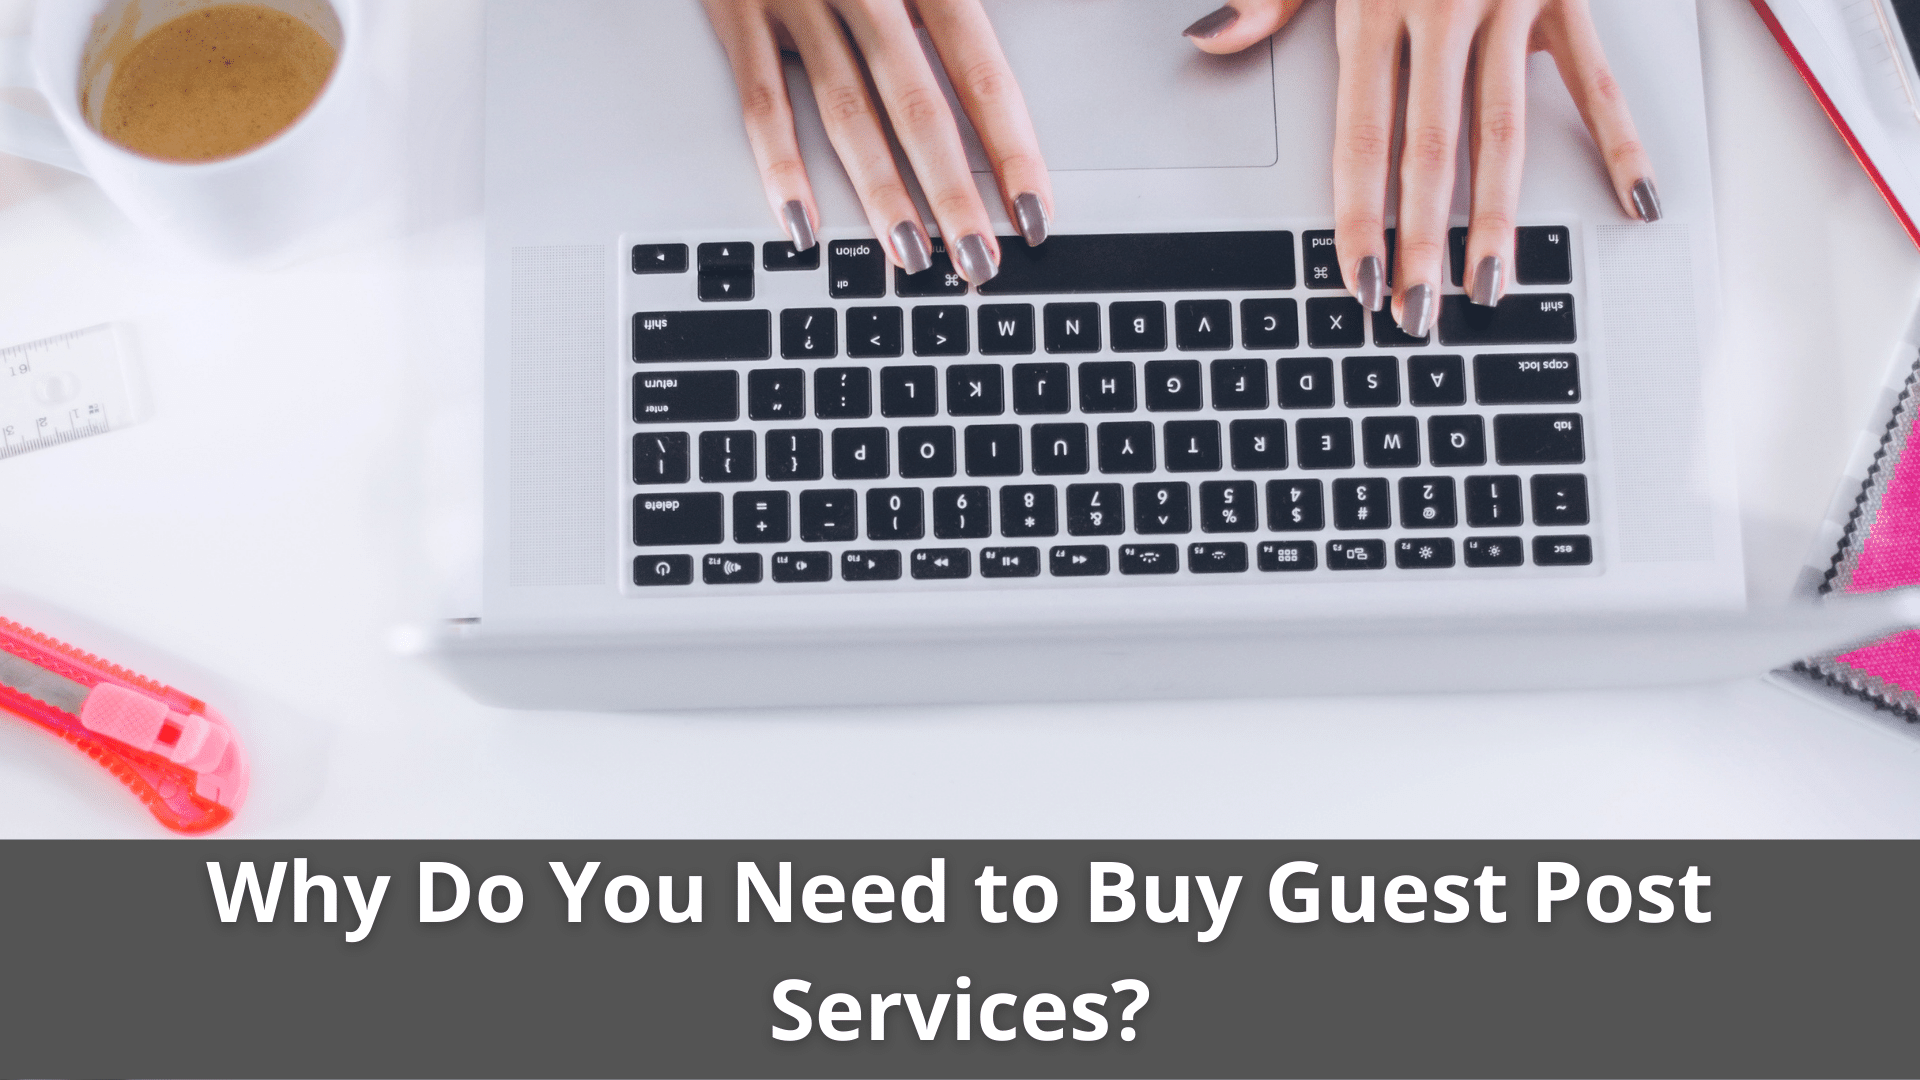 Why Do You Need to Buy Guest Post Services? 6